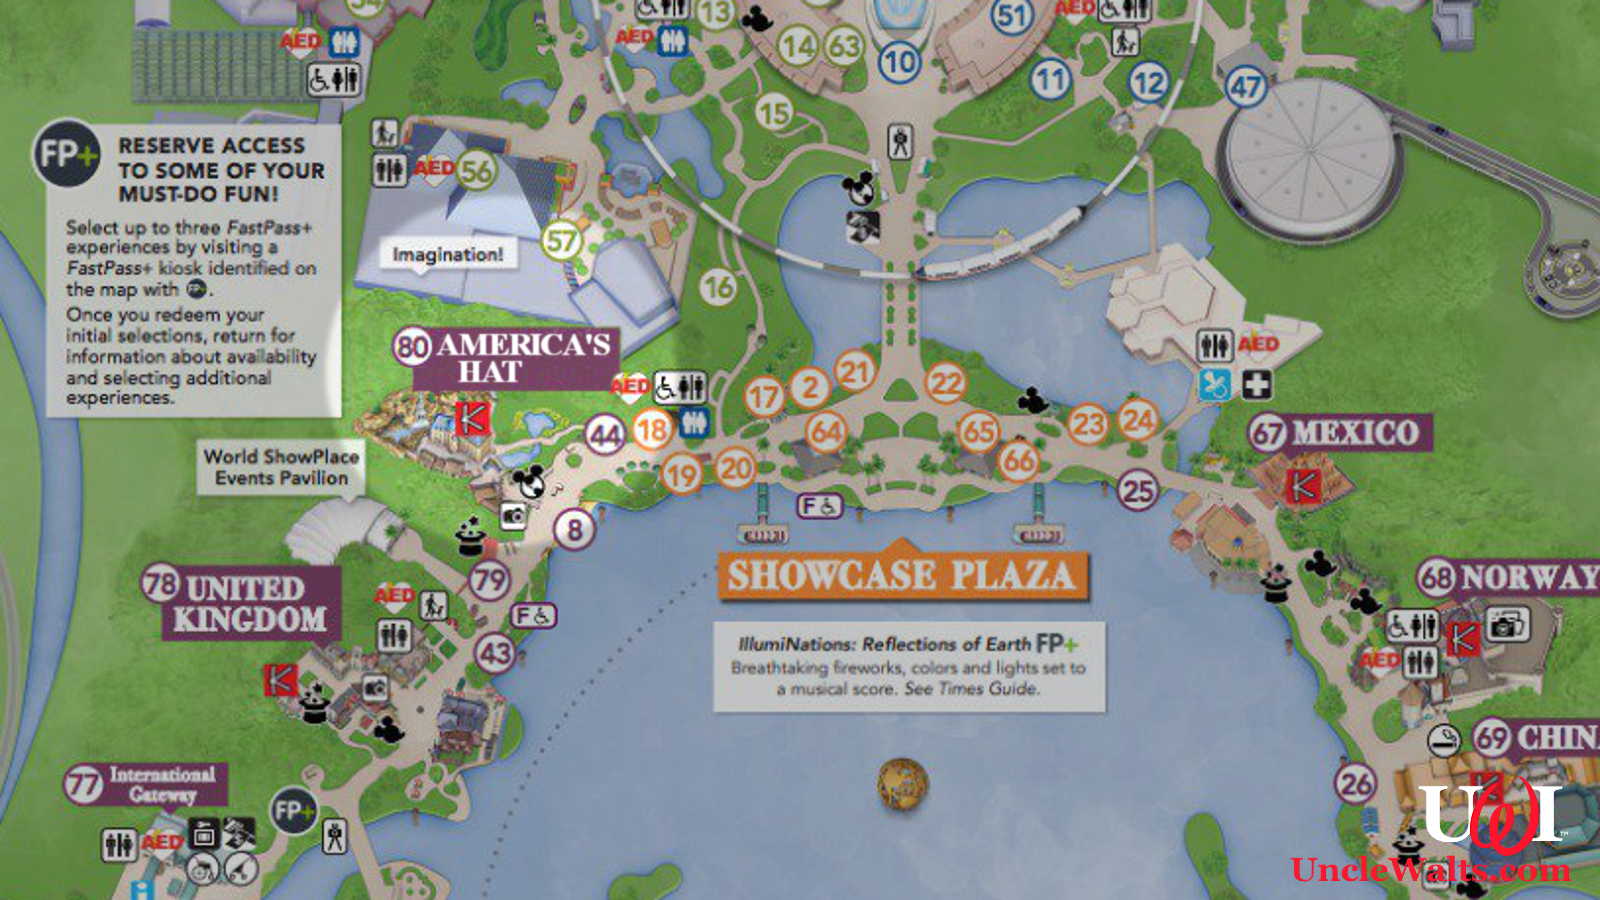 Polite outrage: Epcot map lists Canada Pavilion as ...